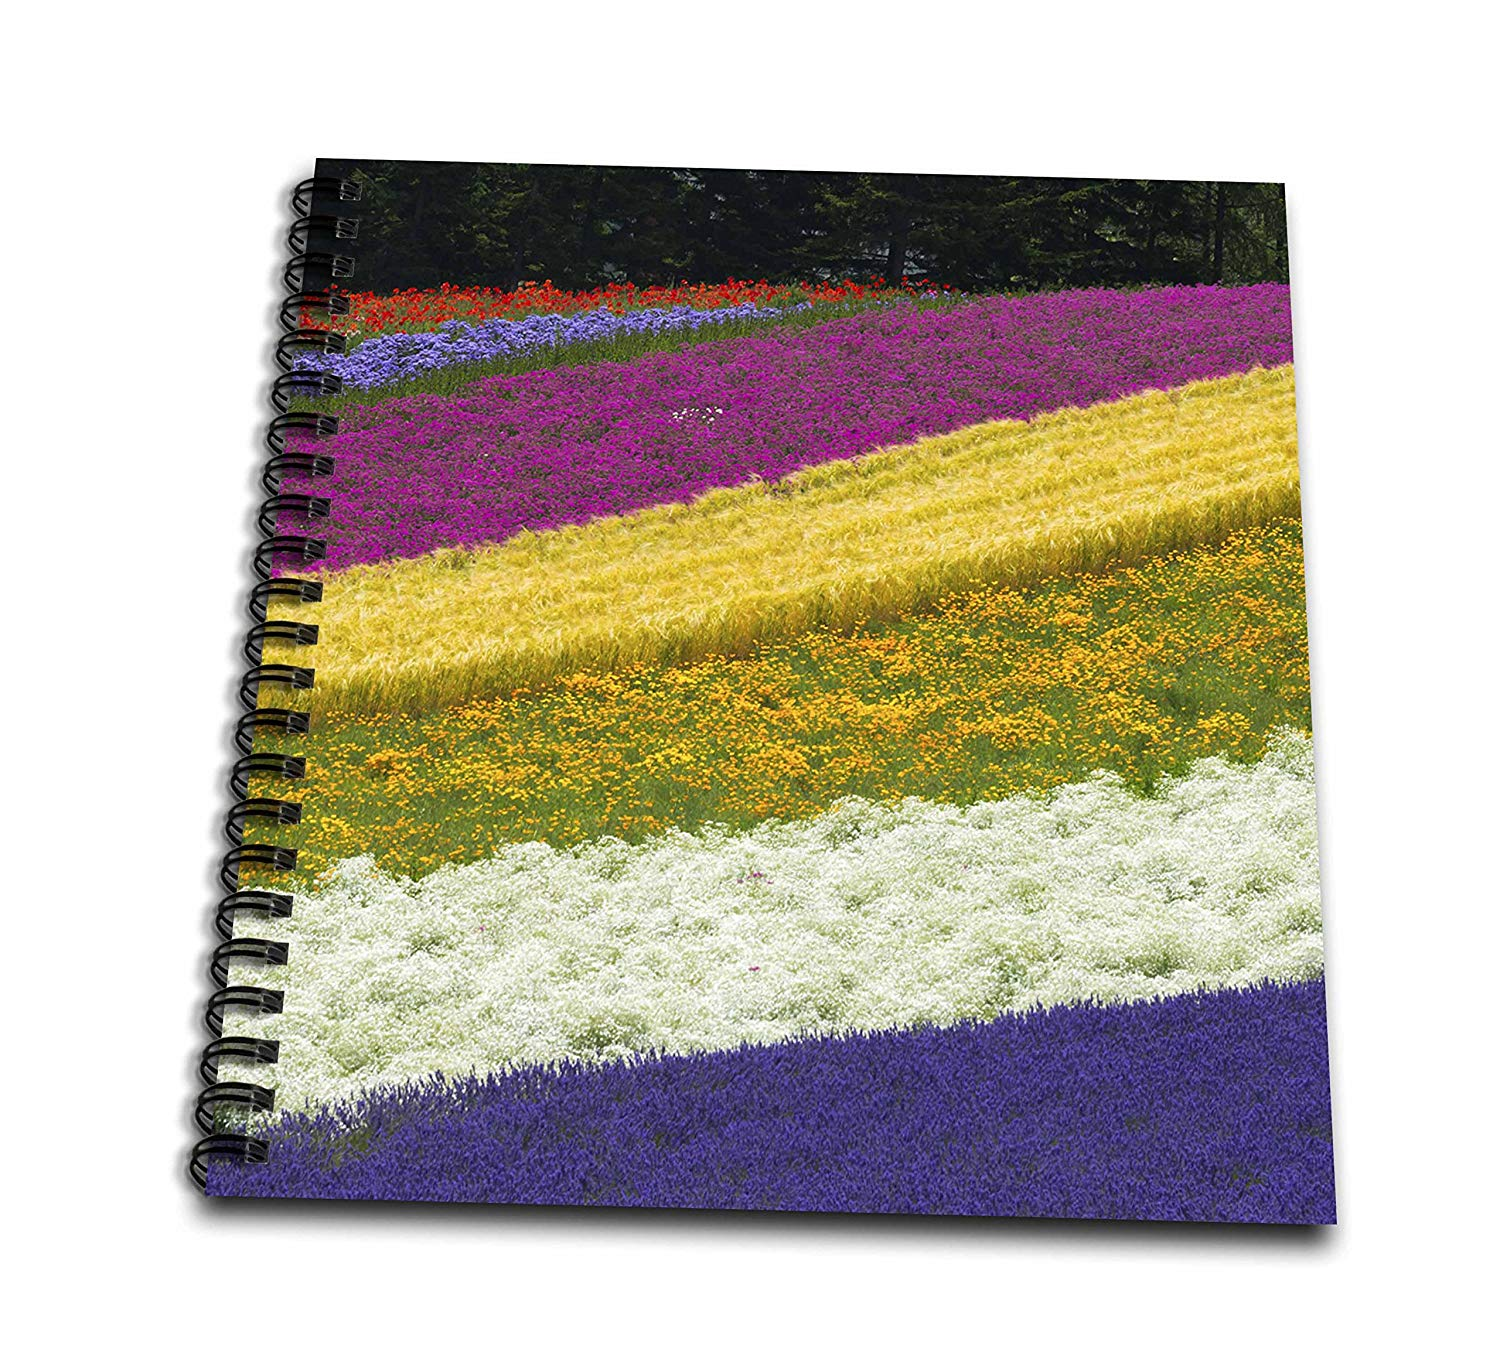 3dRose Danita Delimont - Agriculture - Farm with rows of colorful flowers, Furano, Hokkaido, Japan - Memory Book 12 x 12 inch (db_276889_2)